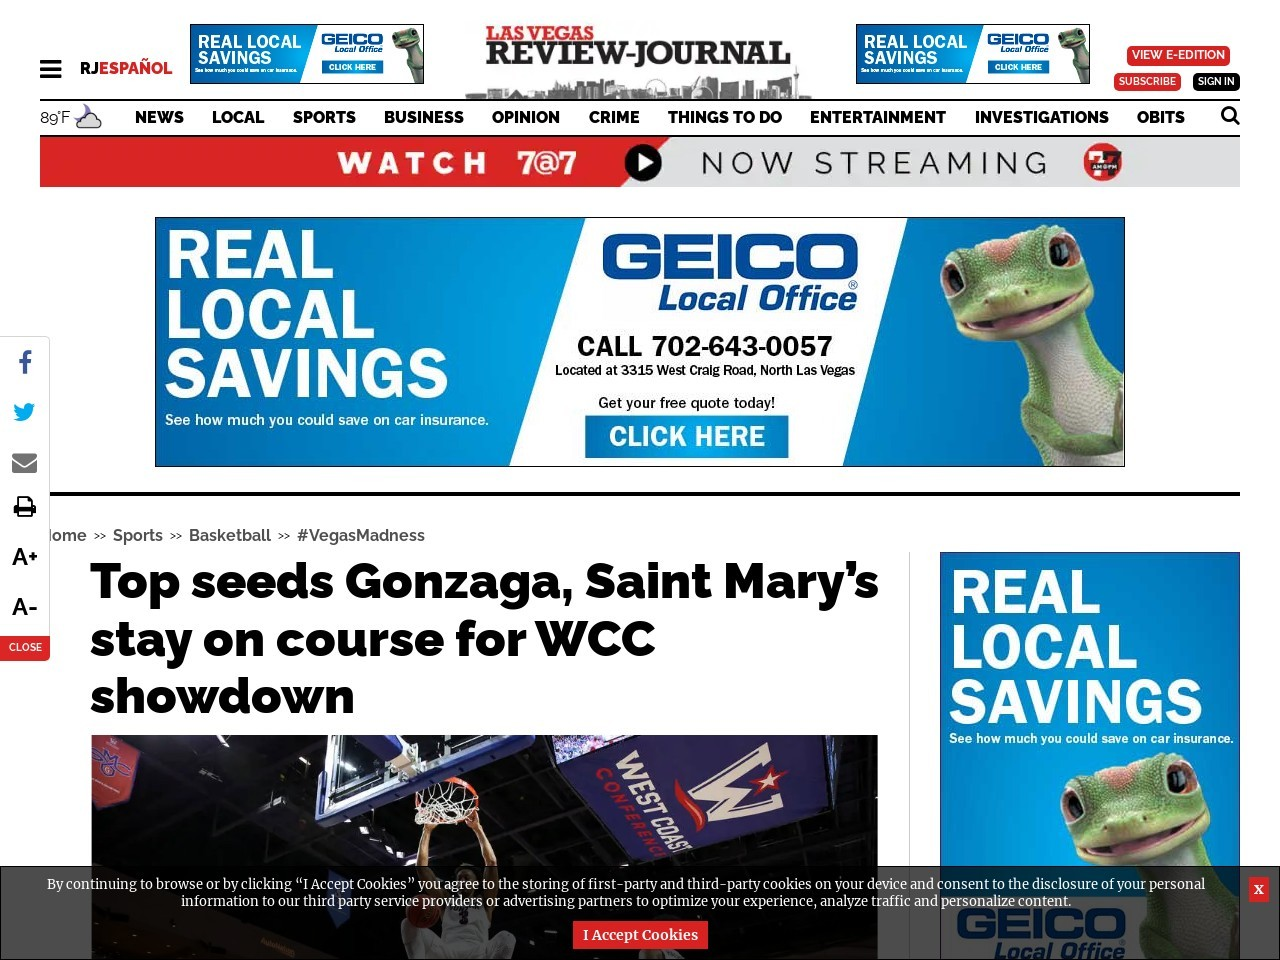 Top seeds Gonzaga, Saint Mary's stay on course for WCC showdown